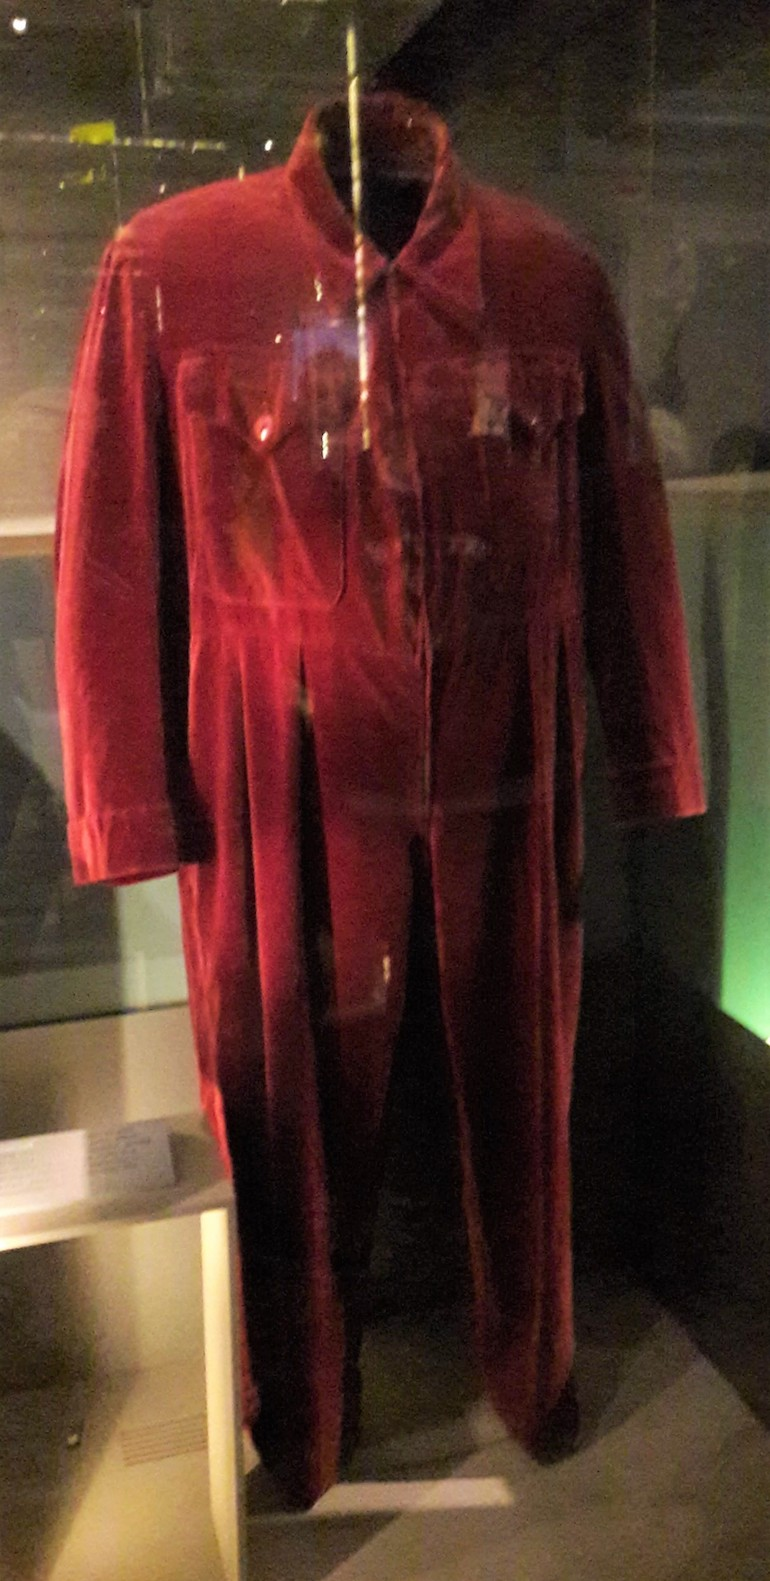 Romper suit at Churchill War Museum in London. Photo Credit: © Caroline Piper.